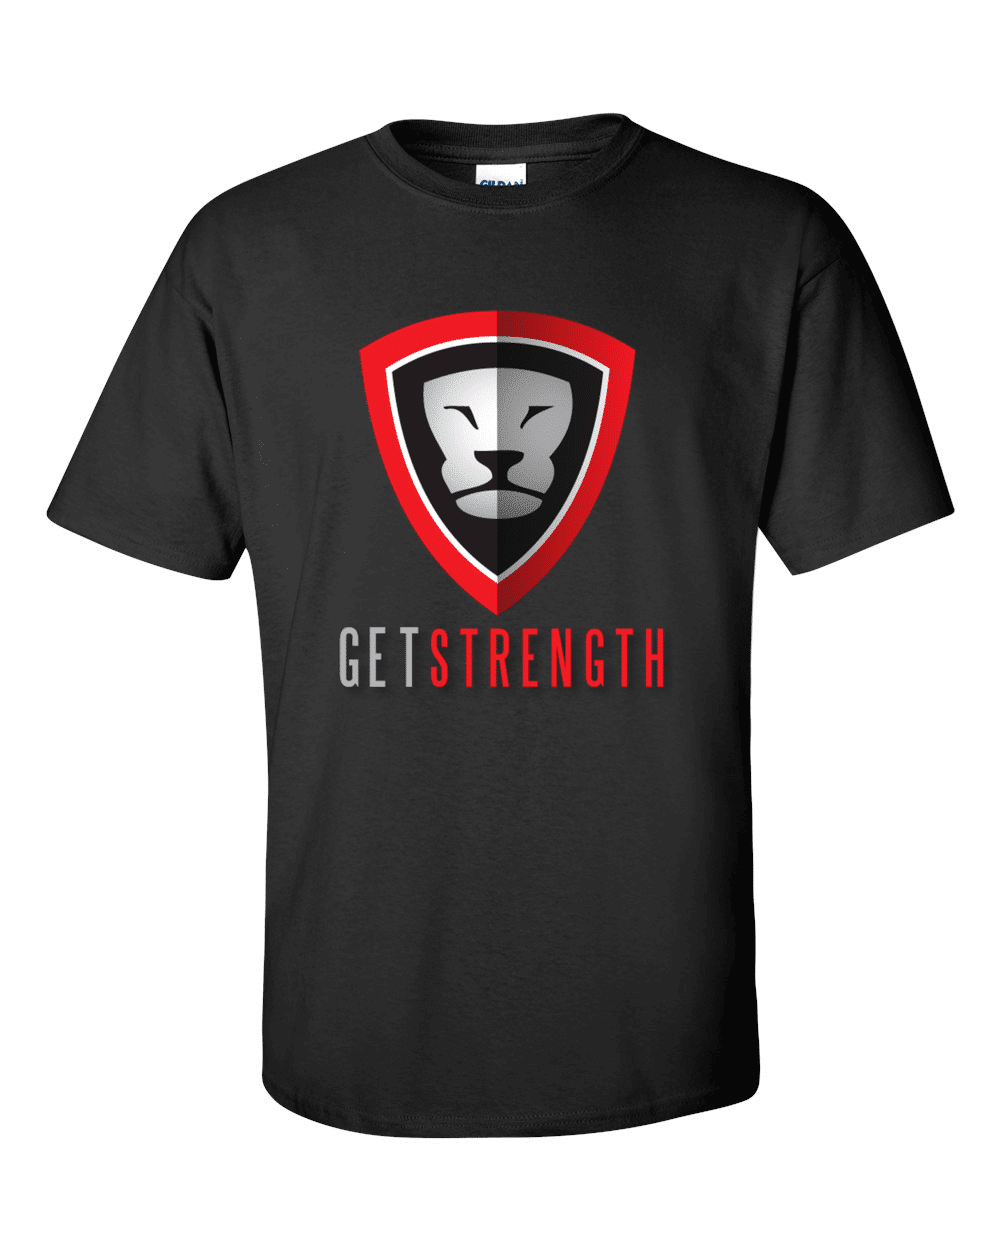 Getstrength Lightweight Short Sleeve T-Shirt